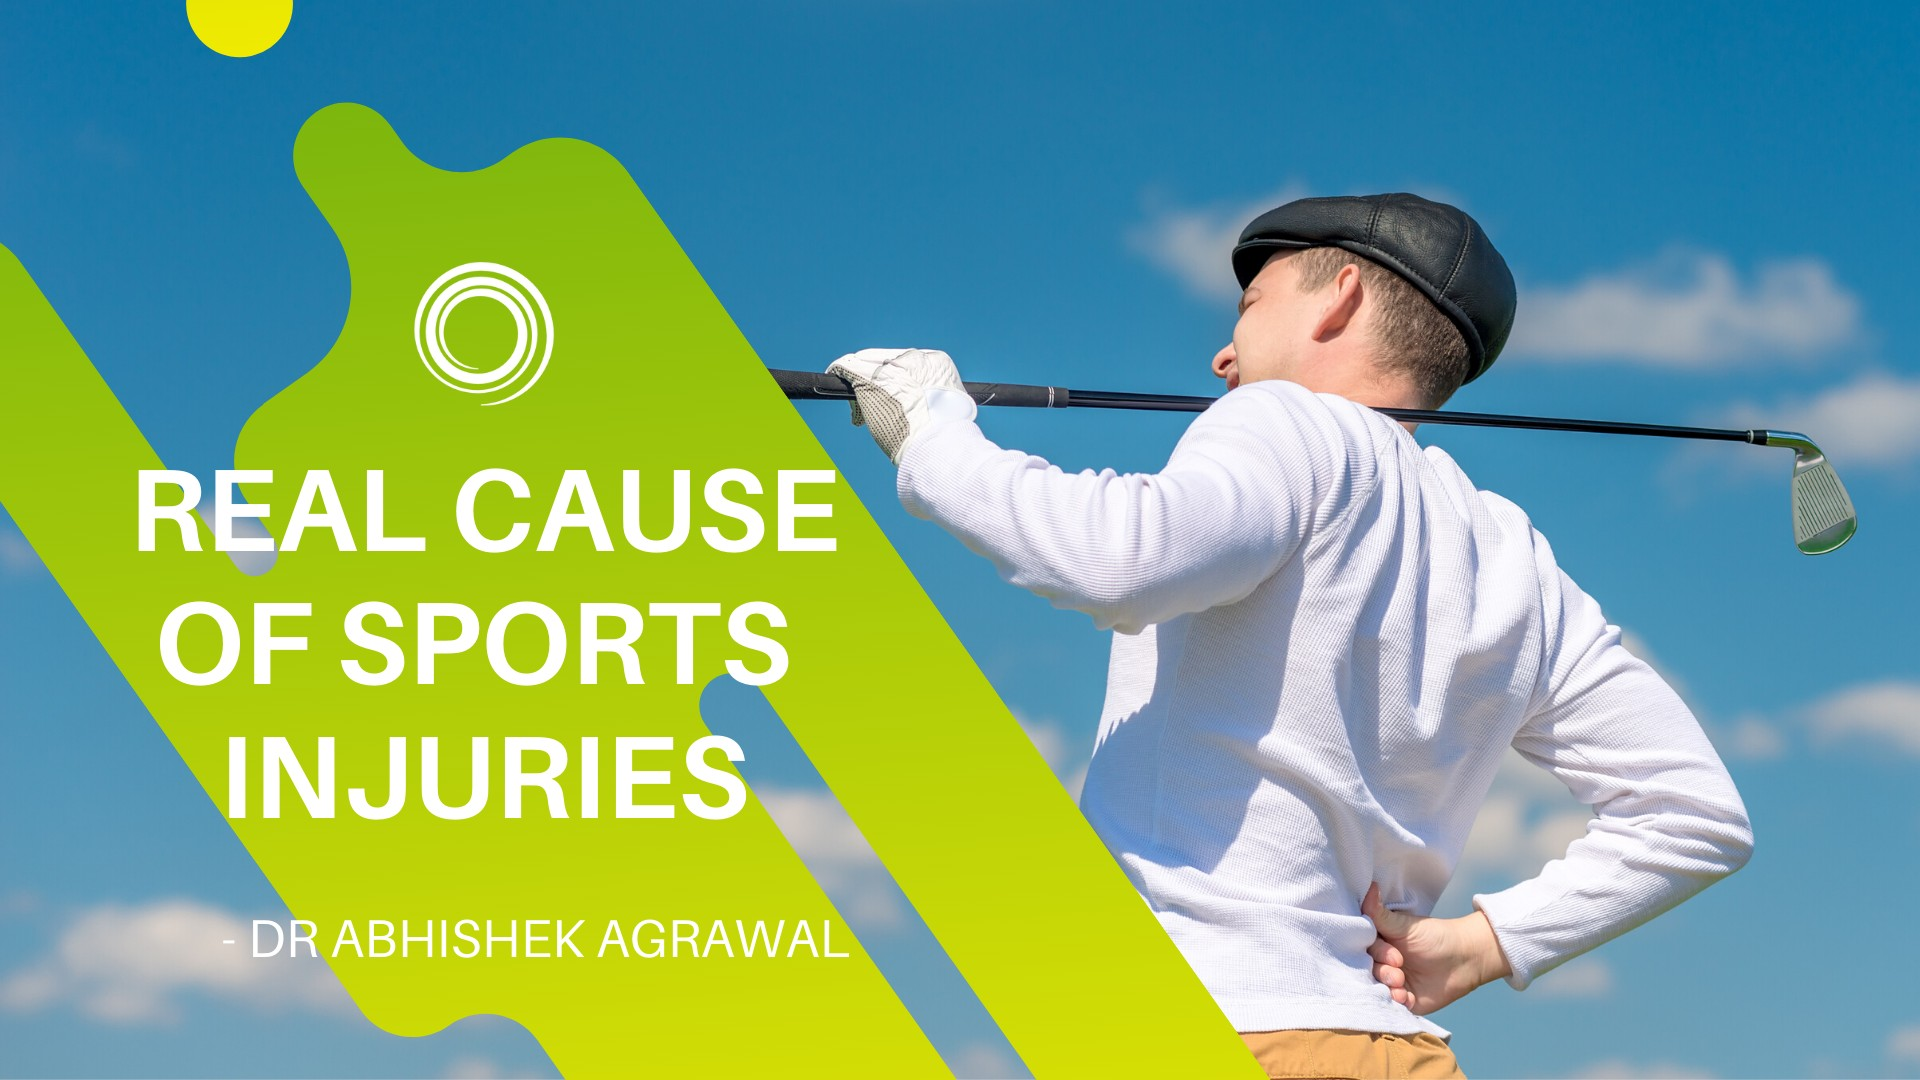 Real Cause of Sports Injuries